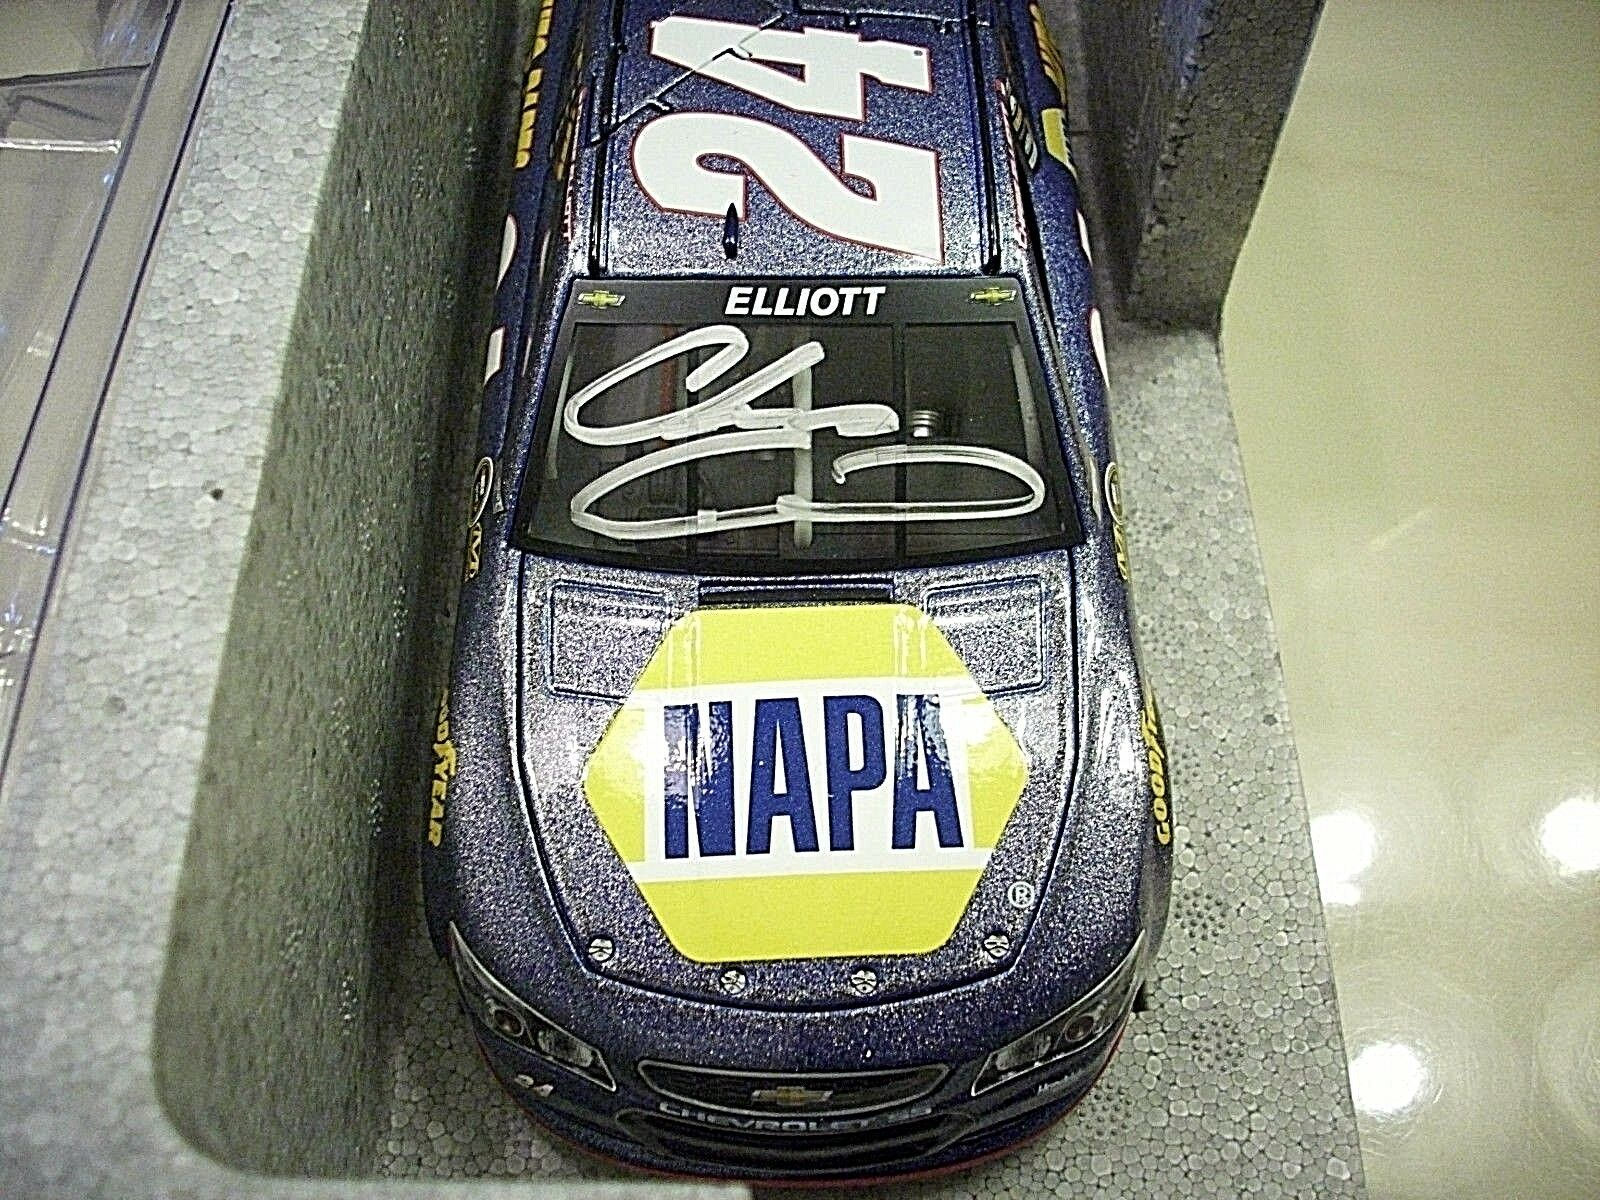 2016 ARC 1 24 CHASE ELLIOTT NAPA  ROOKIE  SIGNED  GALAXY COLOR ARC  1 OF 50 MADE